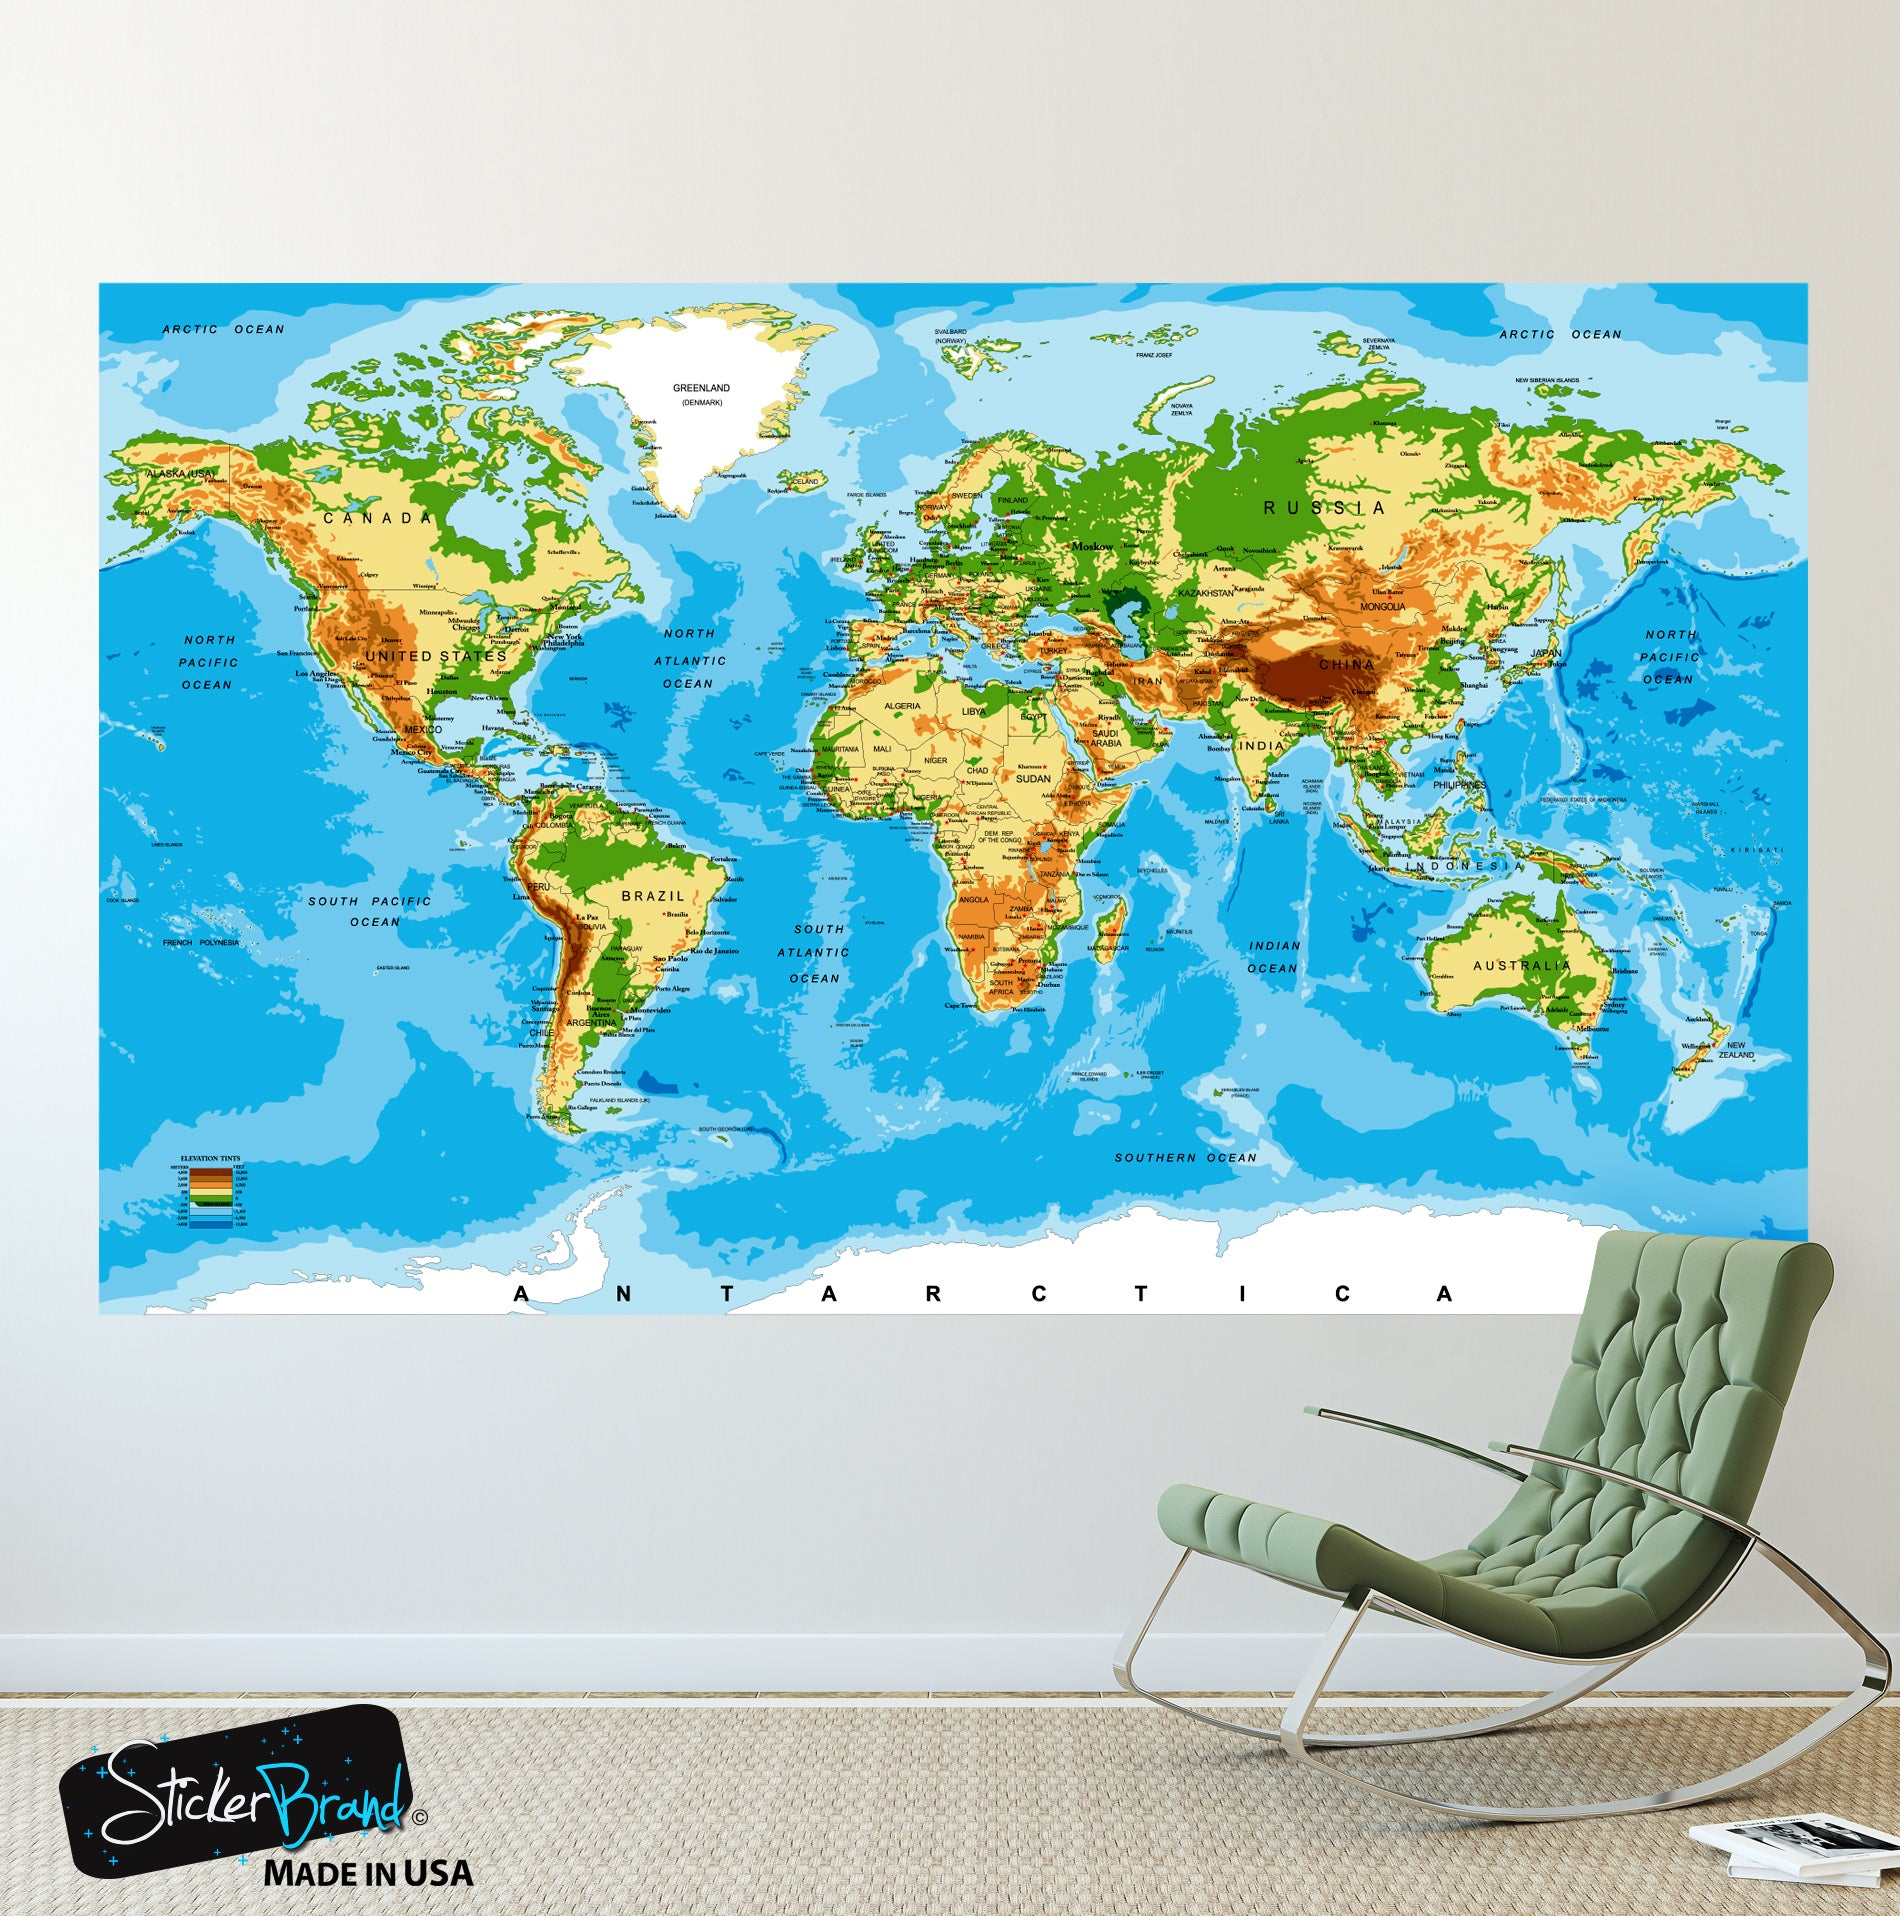 World map poster educational wall map guide with elevation chart p1 world map poster educational wall map guide with elevation chart p1002 gumiabroncs Images